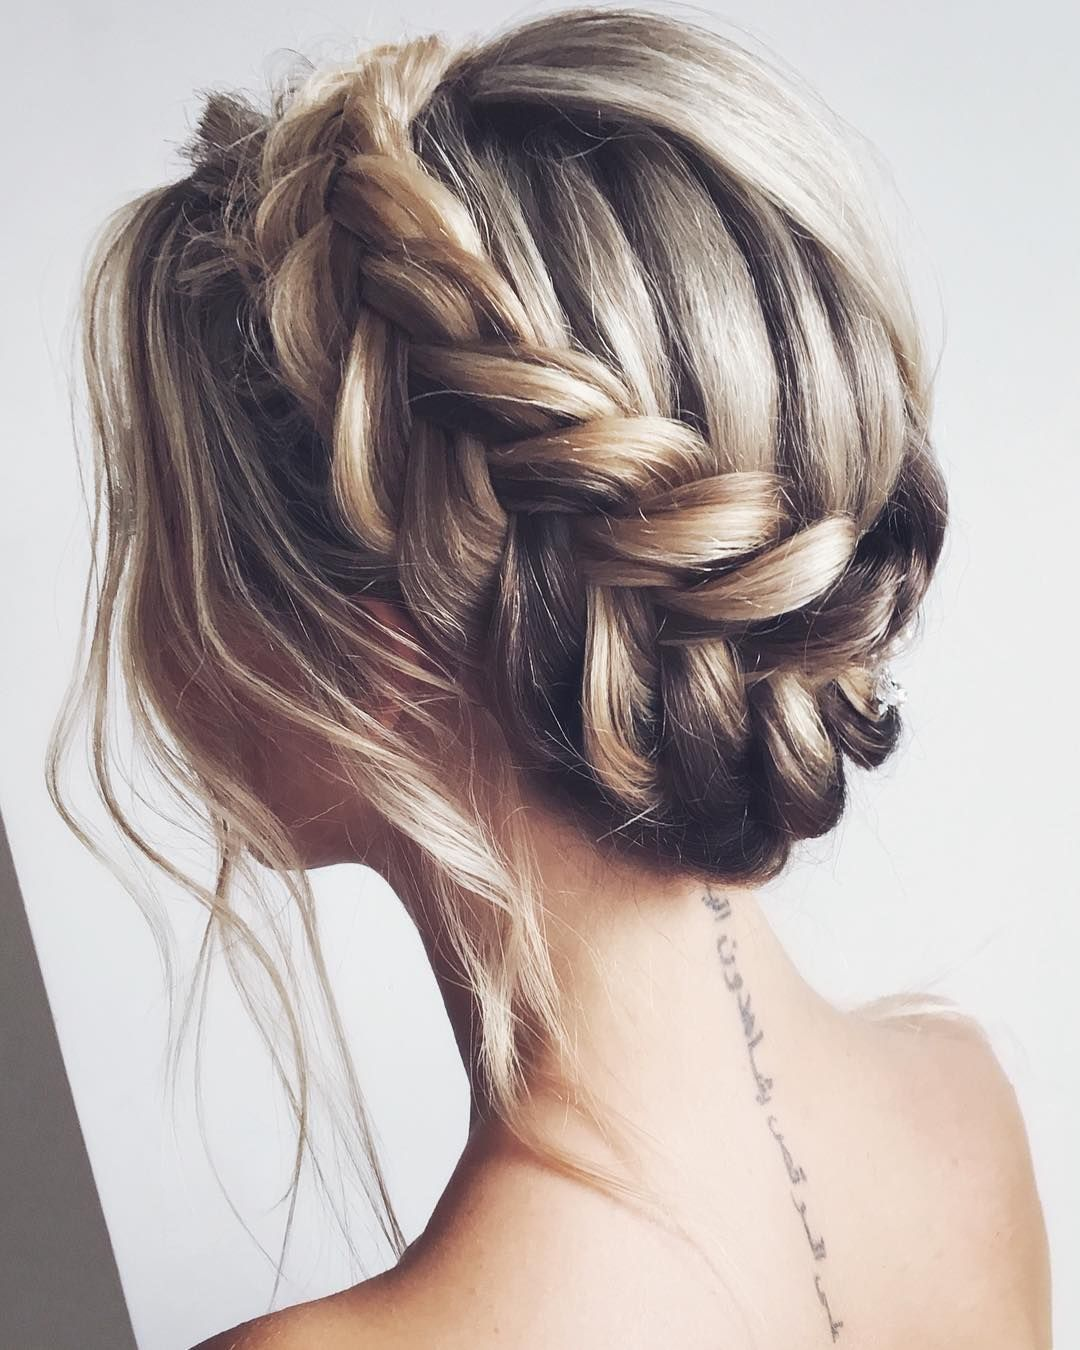 23 Romantic Wedding Hairstyles For Long Hair: 51 Beautiful Bridal Updos Wedding Hairstyles For A